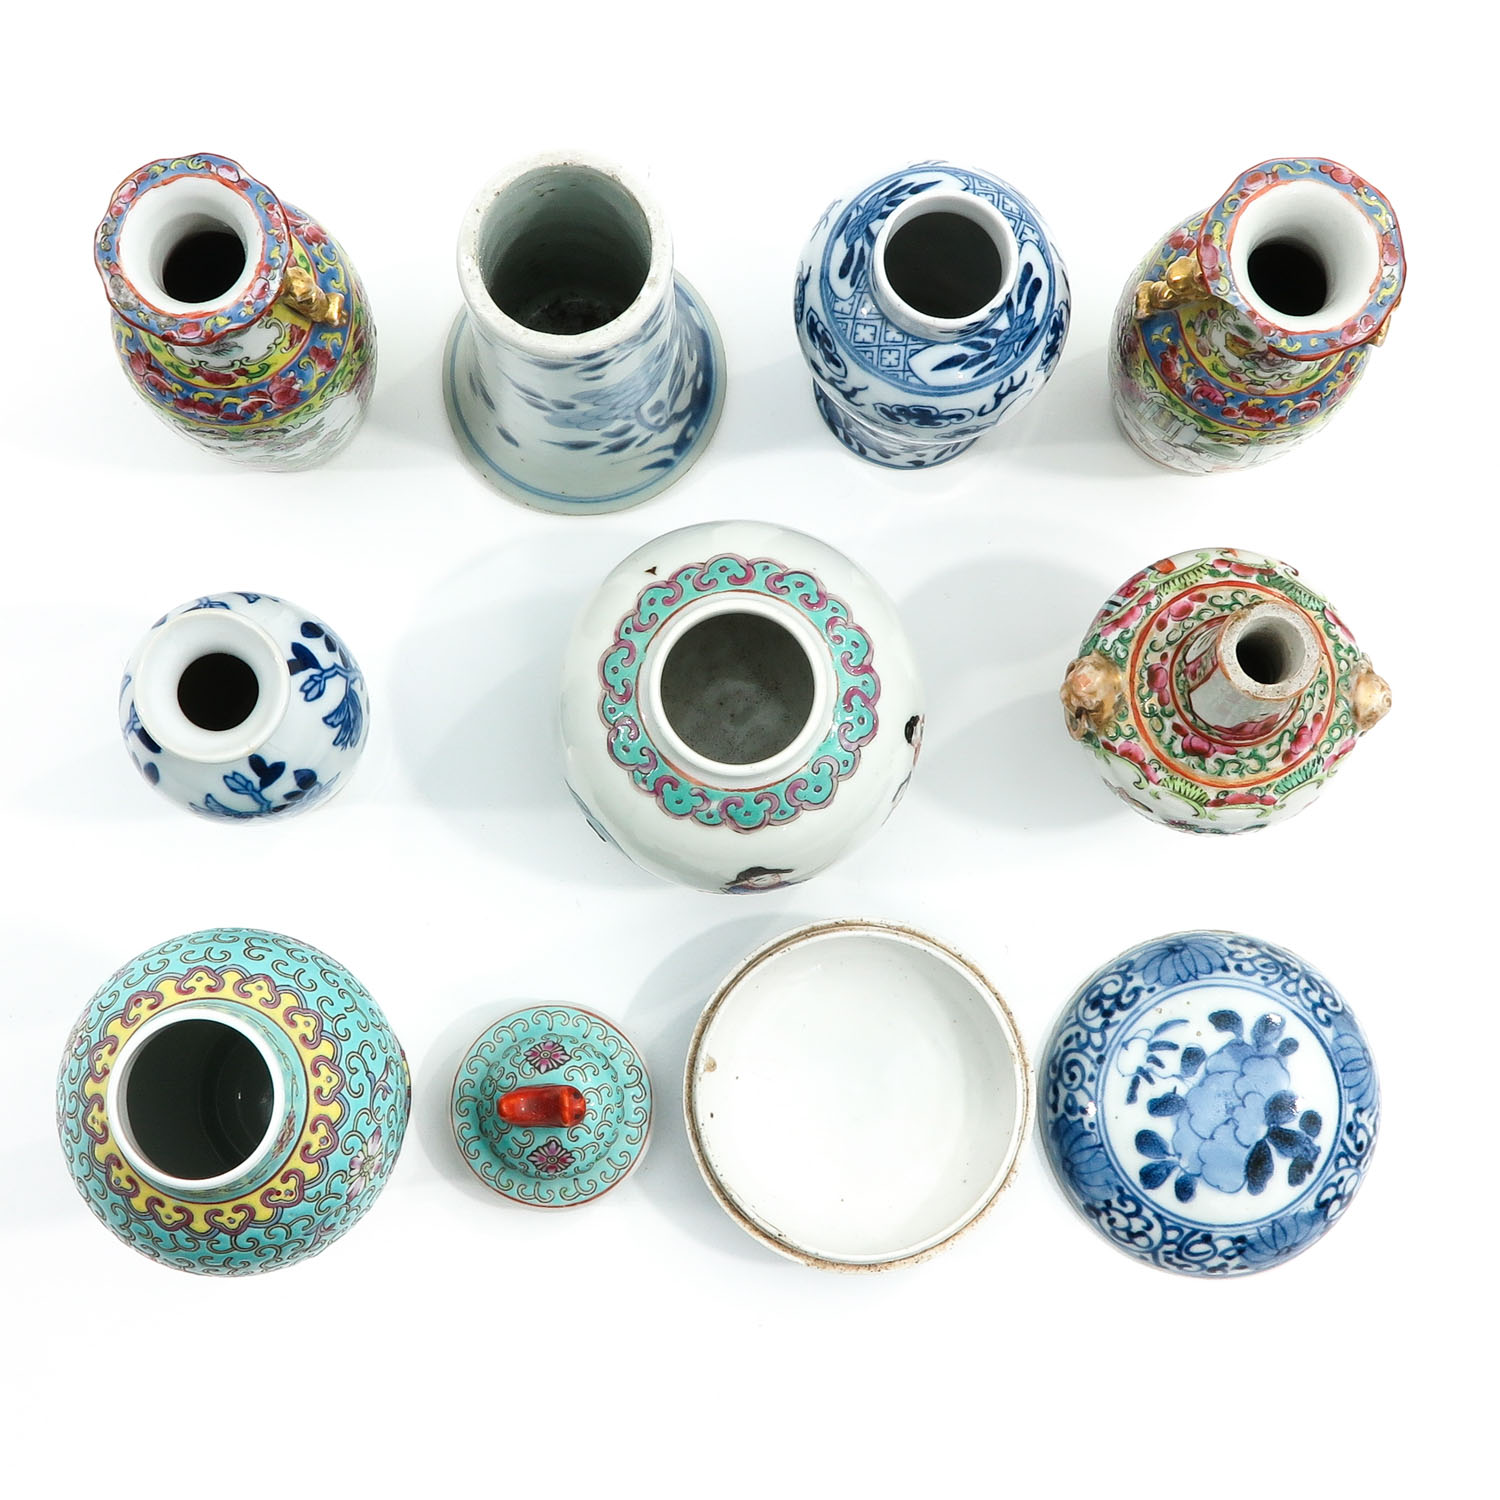 A Diverse Collection of Porcelain - Image 5 of 10